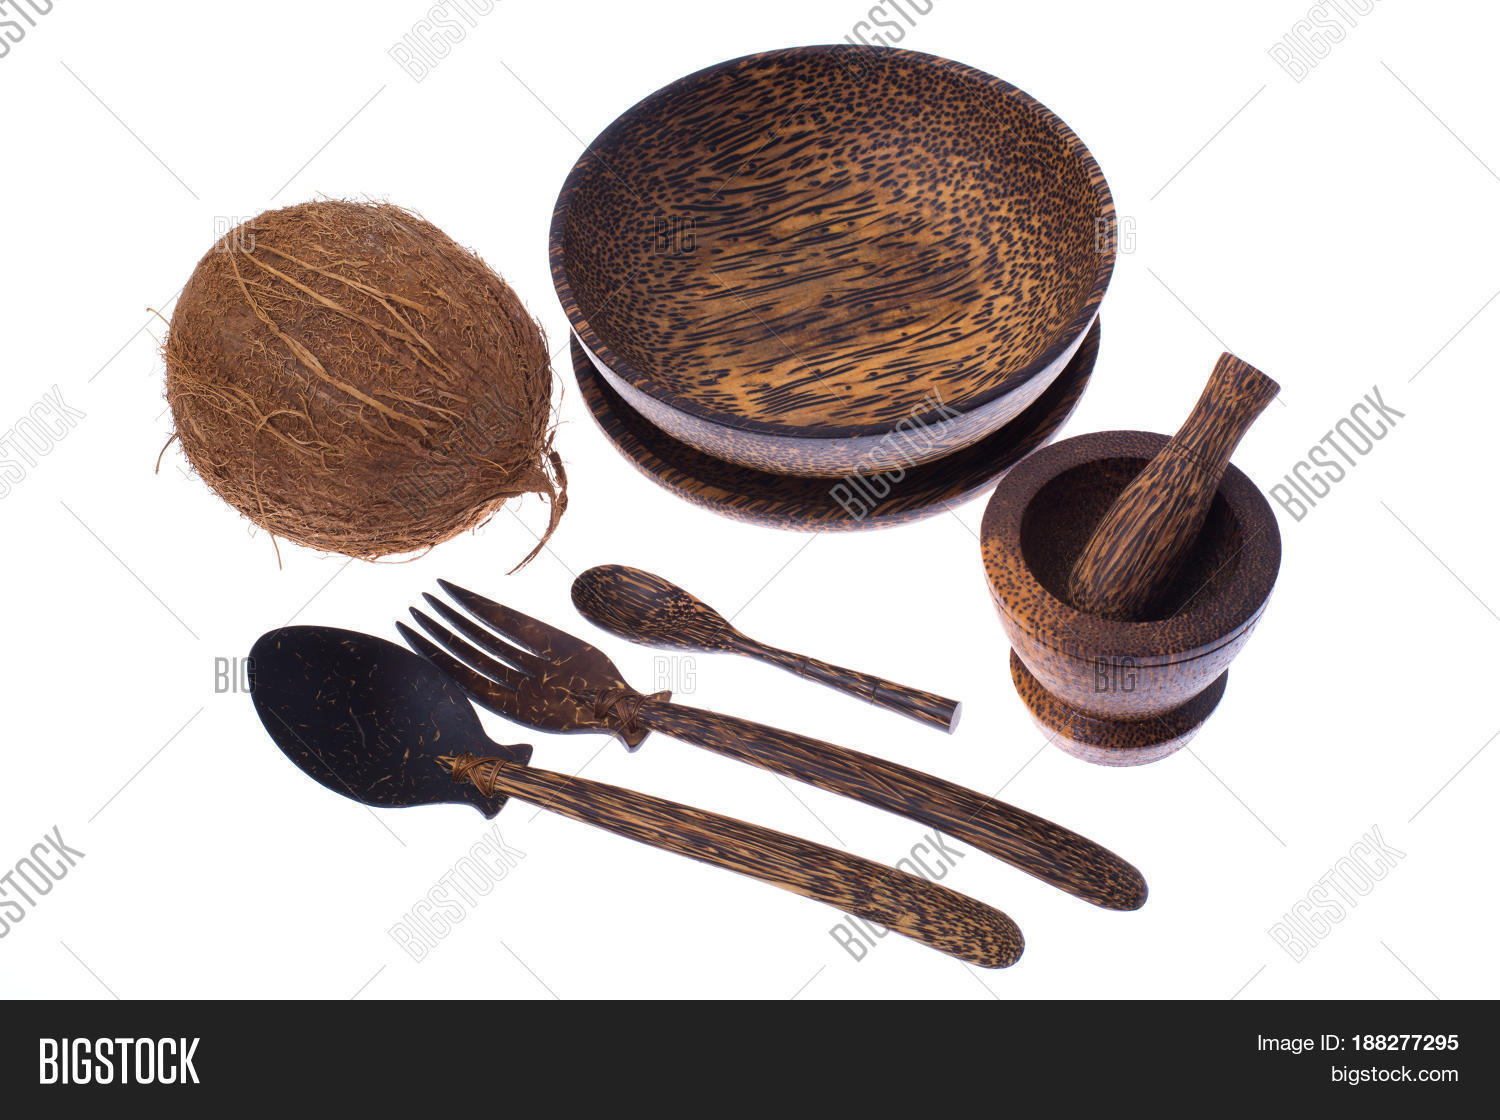 Exotic dining room wooden utensils image photo bigstock for Dining room utensils